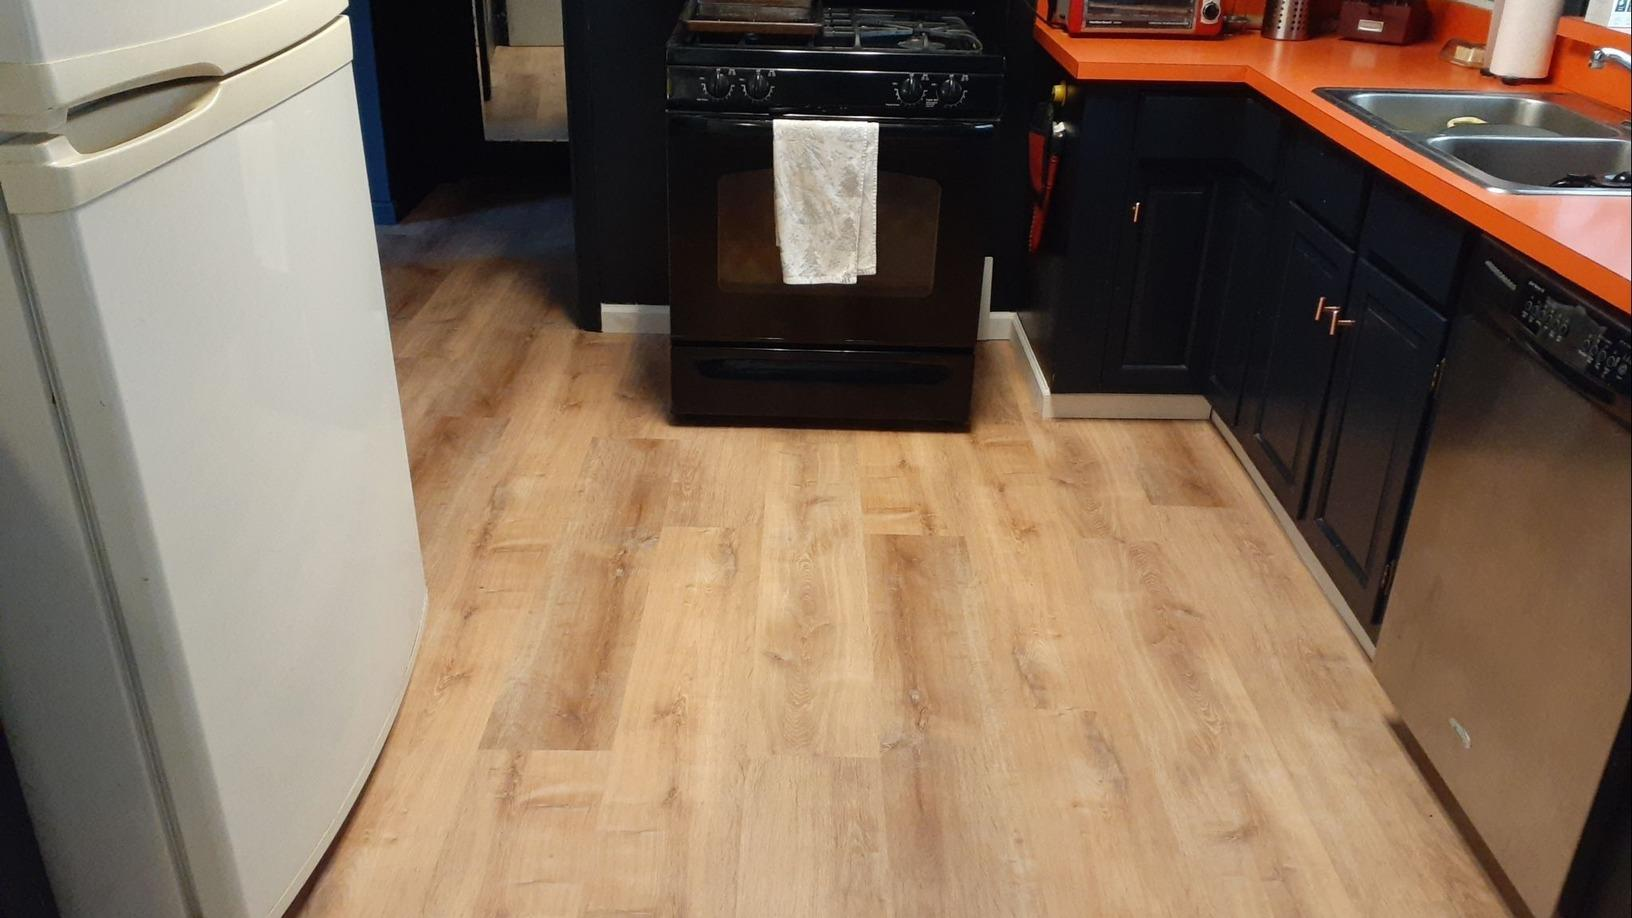 Flooring Installed in the Kitchen, Living Room and Bar in Raytown, MO - After Photo